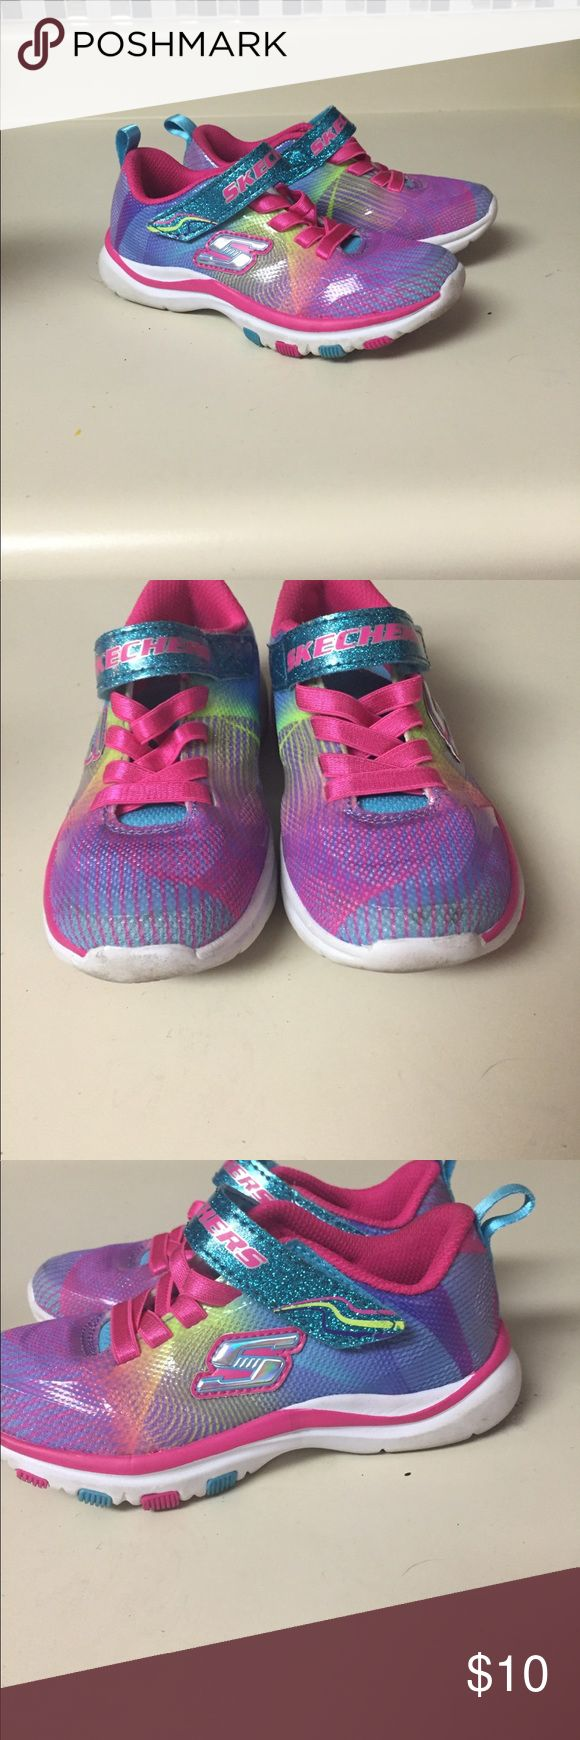 Skecher size 10.5 colorful sneakers slip on Cute girls sneakers. Sketchers size 10.5. Great condition. Shows some wear on sole Skechers Shoes Sneakers